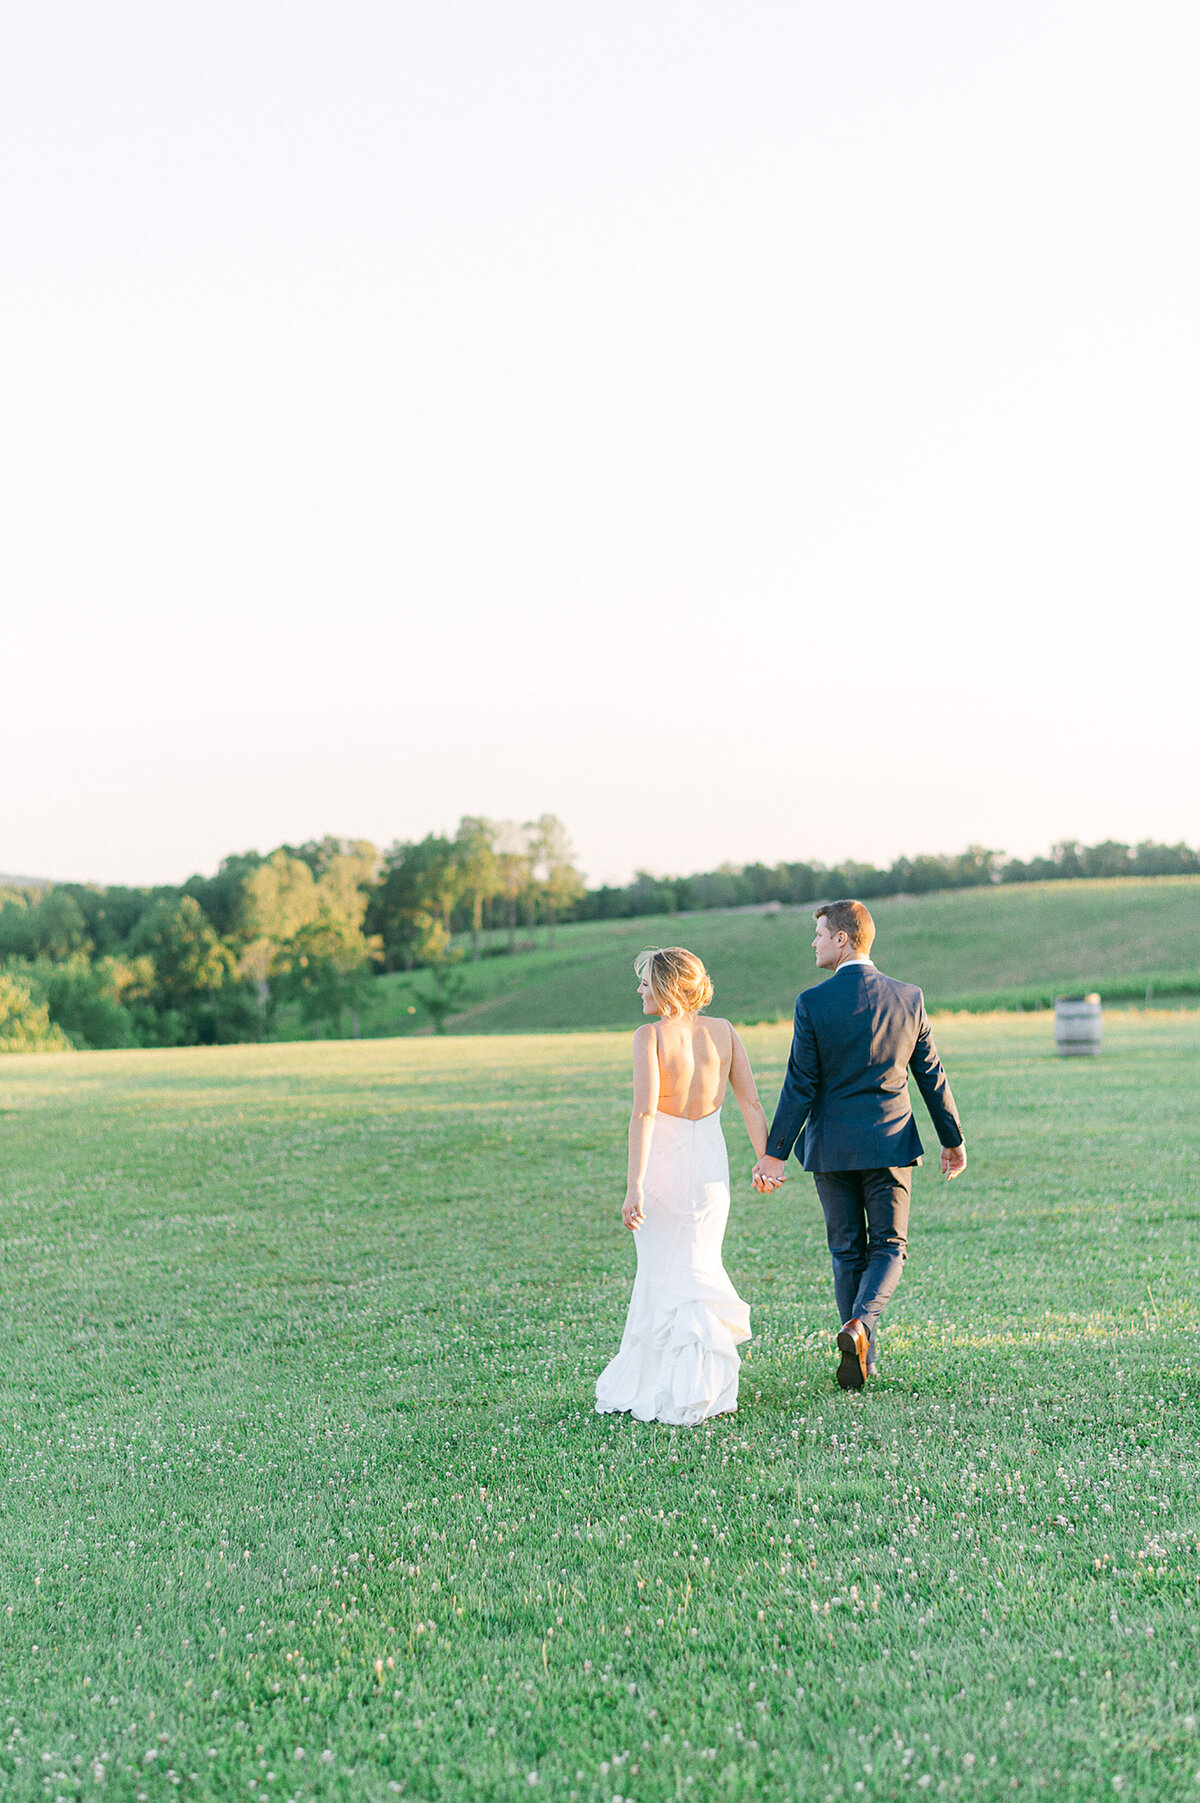 Jennifer Bosak Photography - DC Area Wedding Photography - DC, Virginia, Maryland - Kaitlyn + Jordan - Stone Tower Winery - 48